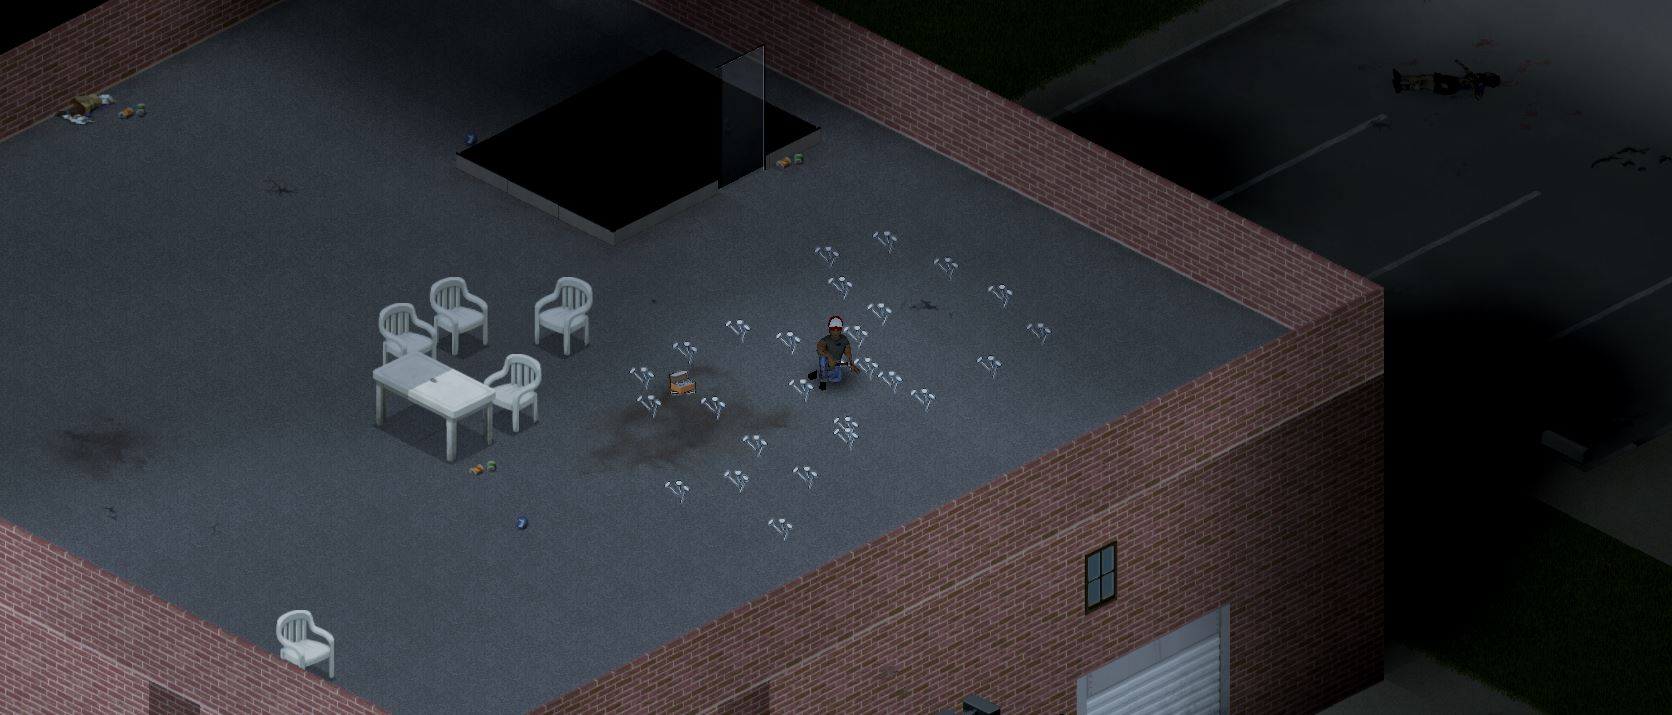 a player in project zomboid sitting on a rooftop surrounded by nails